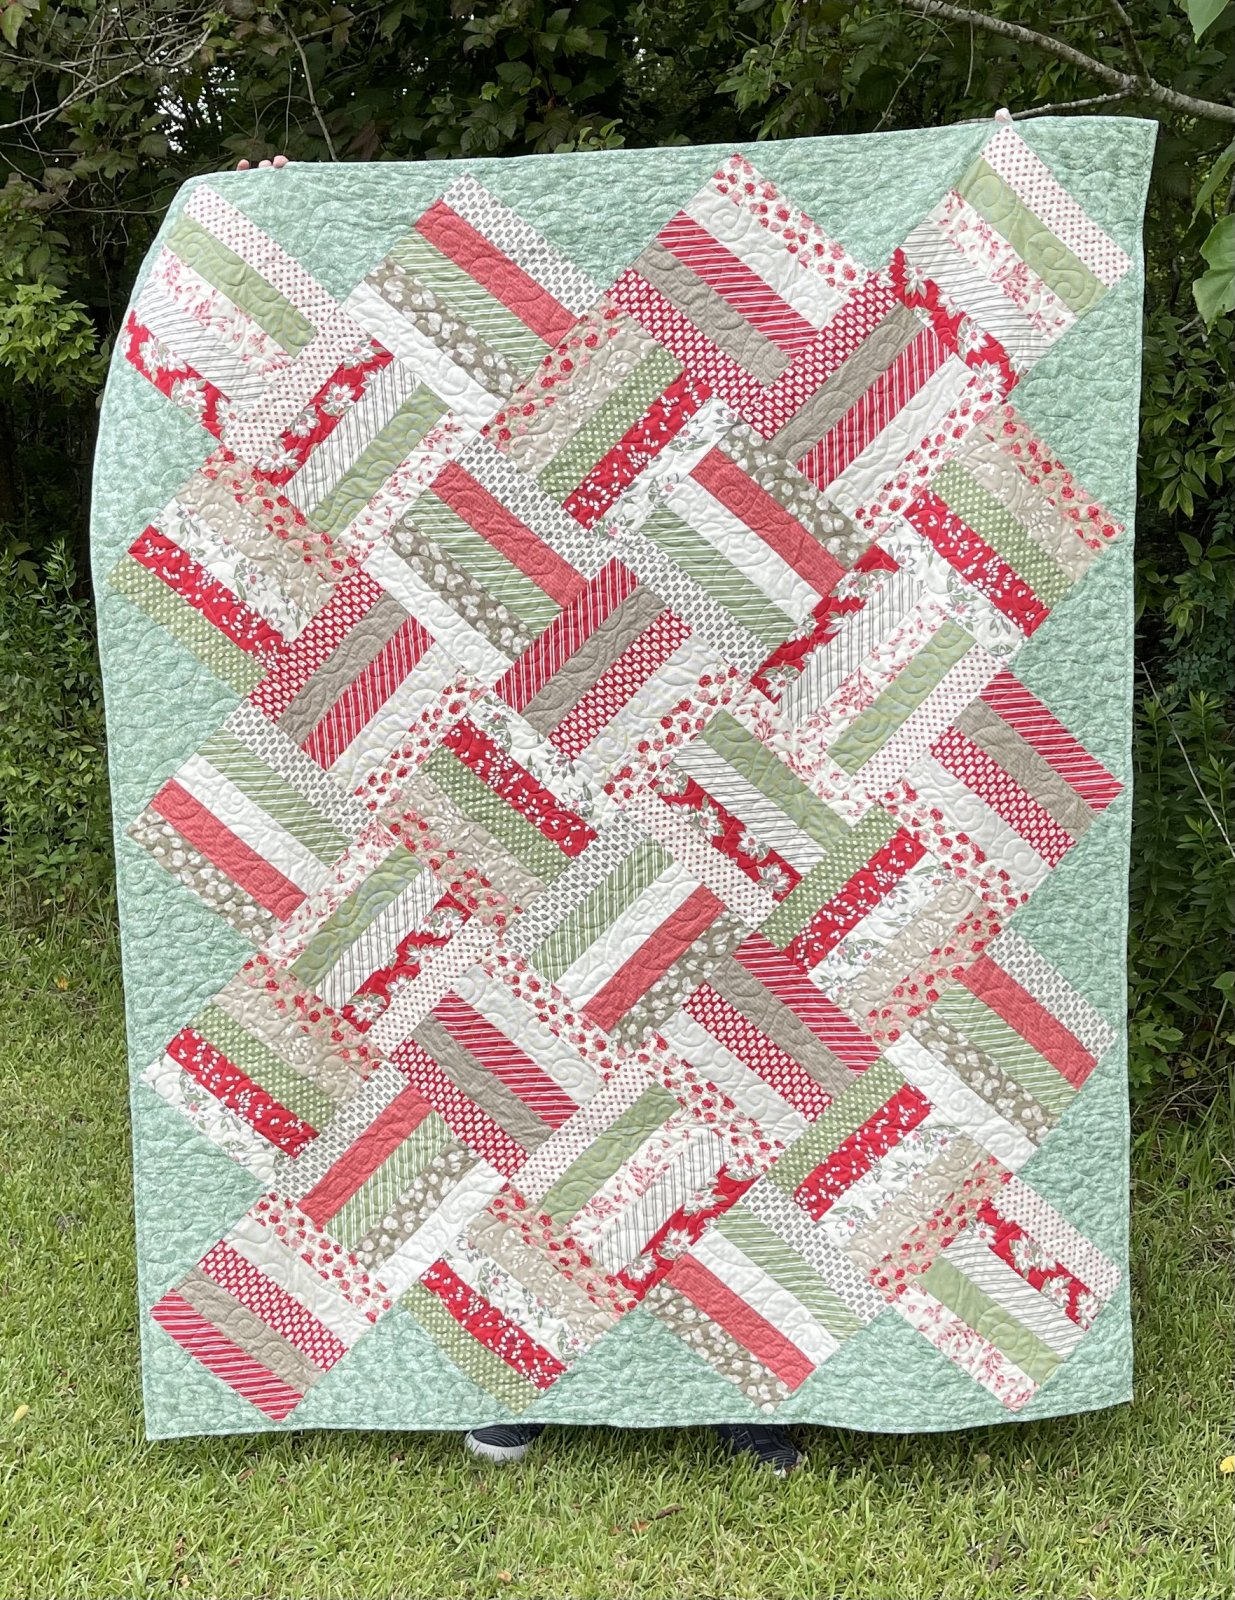 Fields of Flowers Jelly Roll Quilt Kit - Red Cream Taupe Green